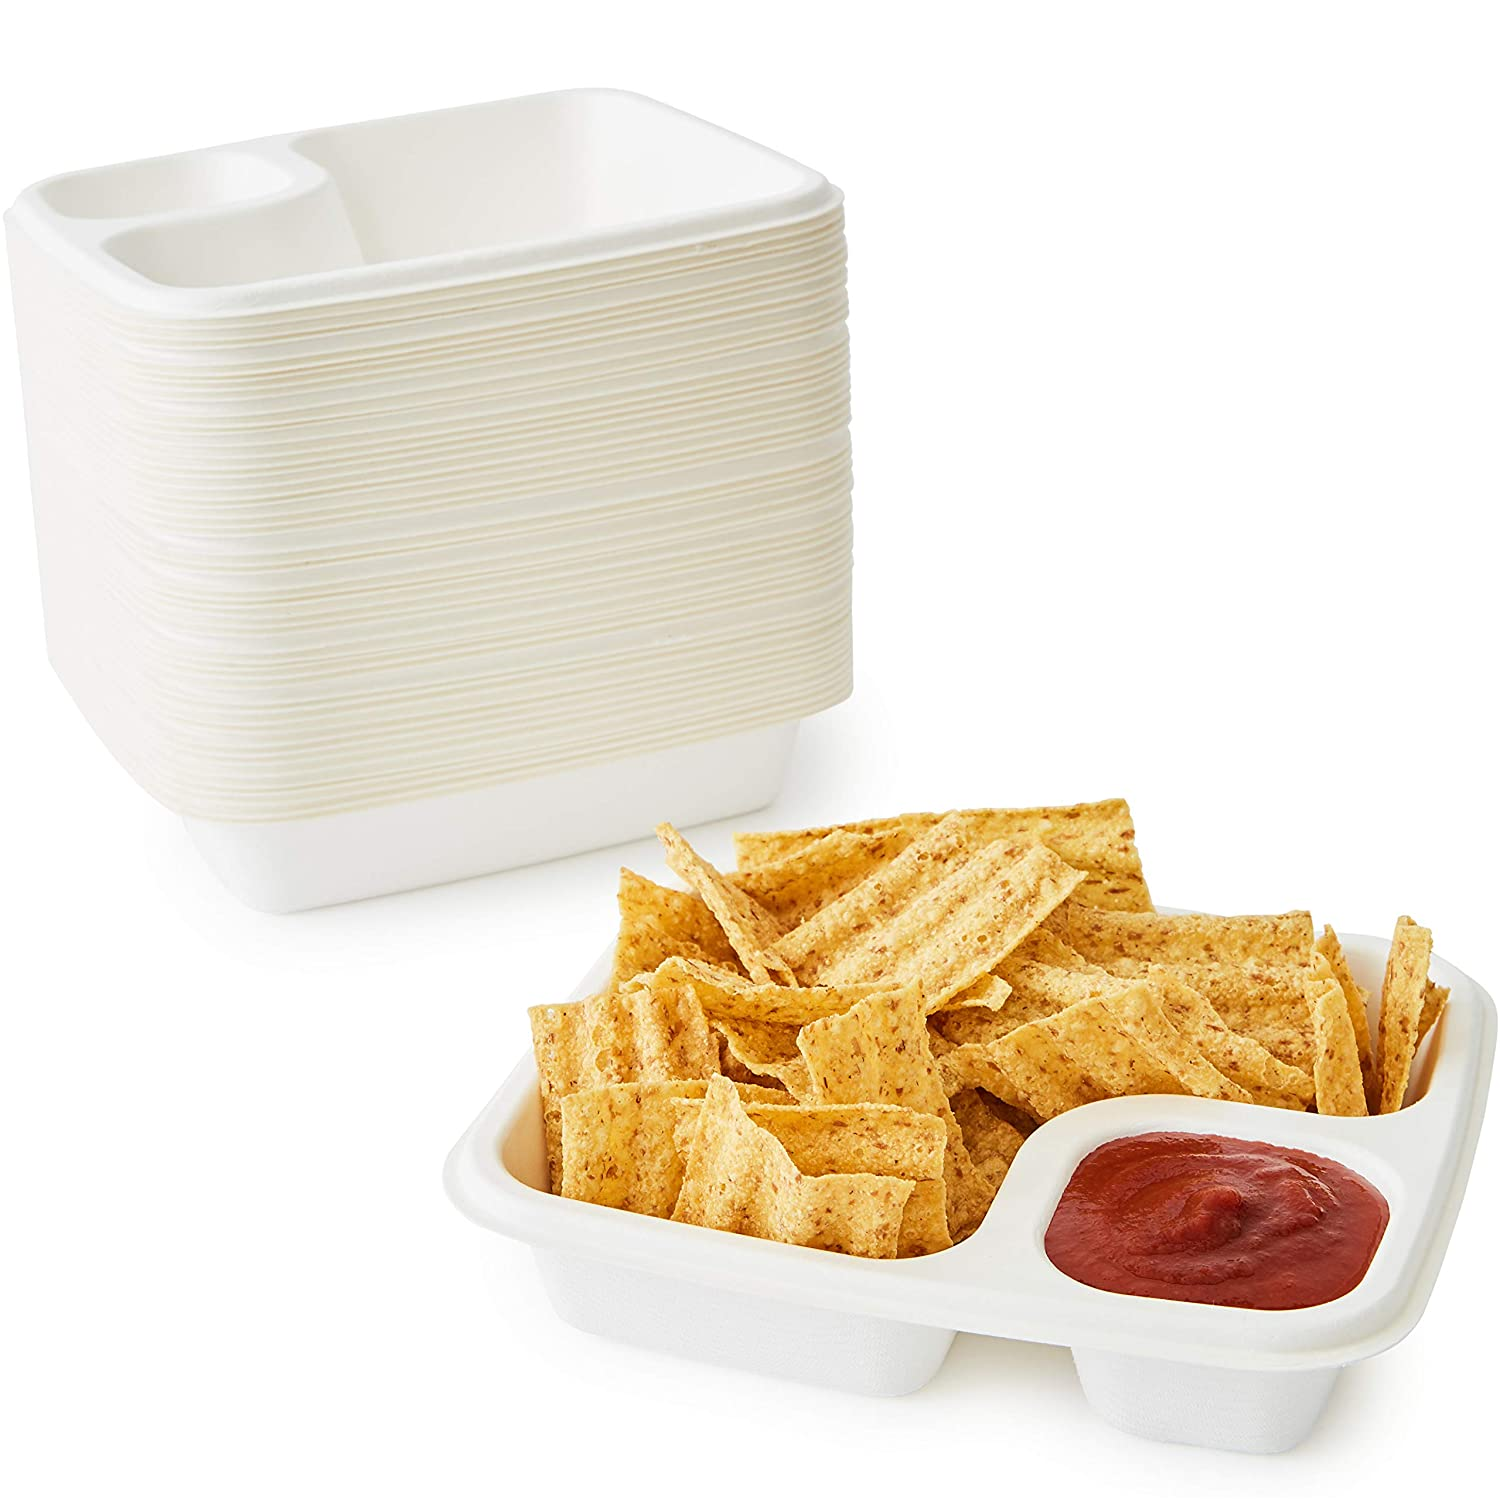 Leak Proof, Compostable Bagasse Nacho Trays 50 Pack. Large, 2 Compartment Serving Tray is Biodegradable and Microwave Safe. Heavy Duty, Divided Holder for Snacks, Nachos and Cheese or Chips and Salsa